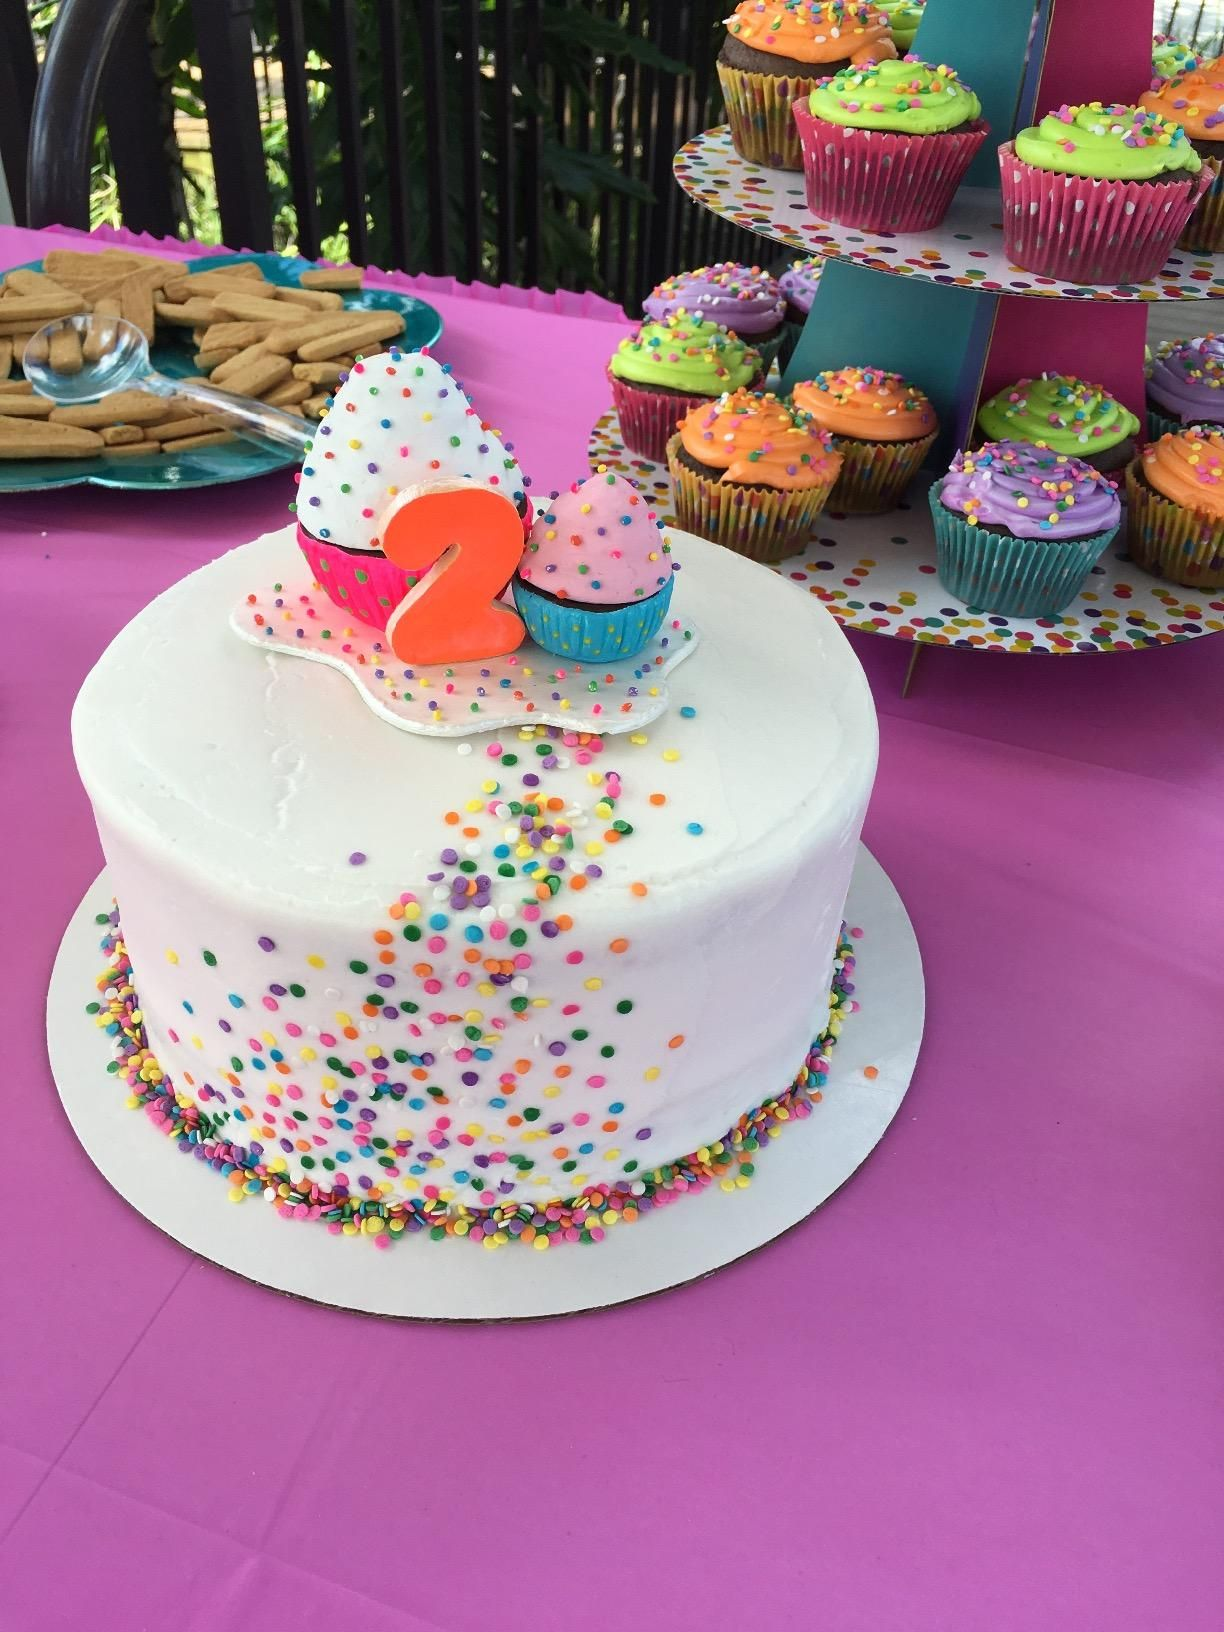 Amazon com: Edible Confetti Sprinkles Cake Cookie Cupcake